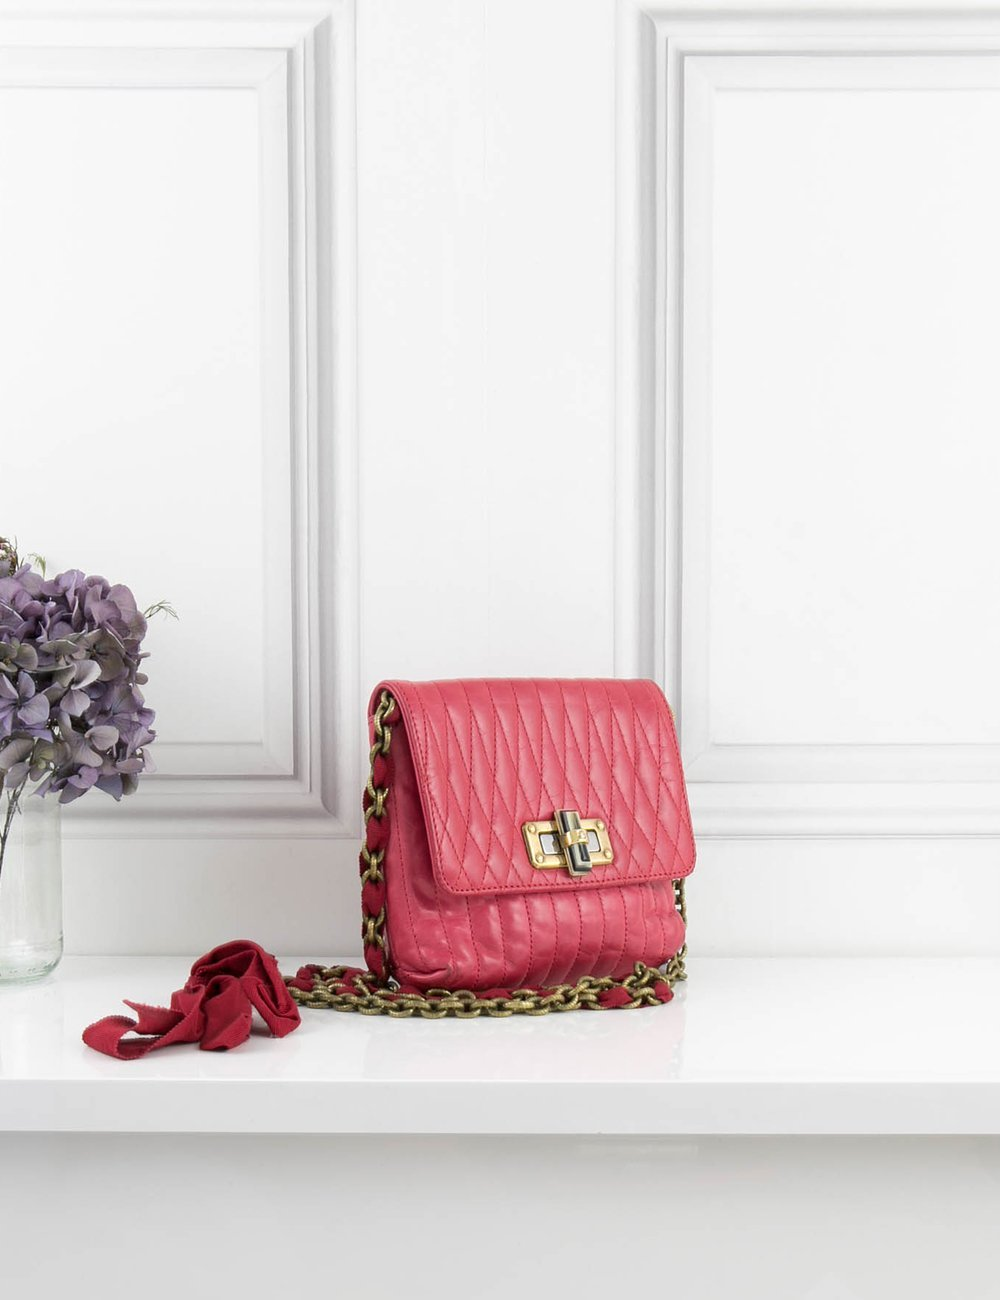 LANVIN BAGS Small pink cross body bag- My Wardrobe Mistakes